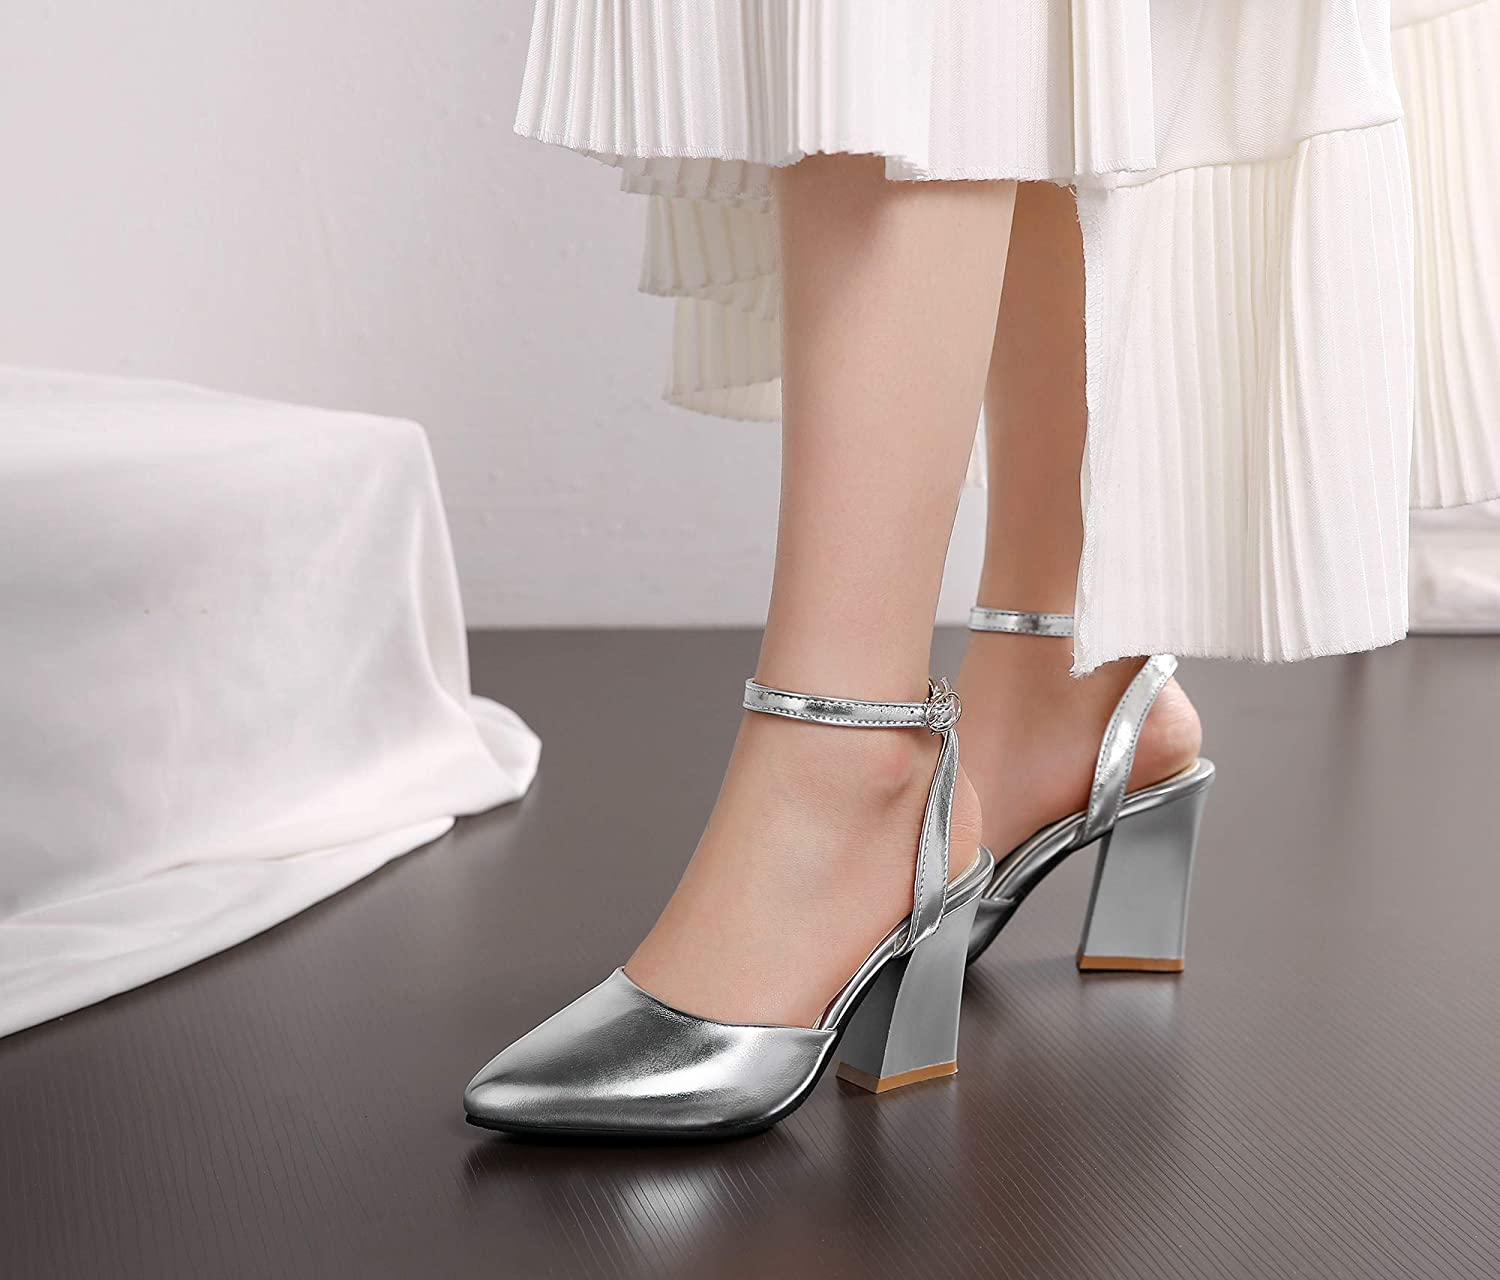 Drizzlein Classic Chunky High Heels for Women Pointed Toe Slingback Ankle Strap Buckled Sandals Glossy Shoes Summer Formal Dating